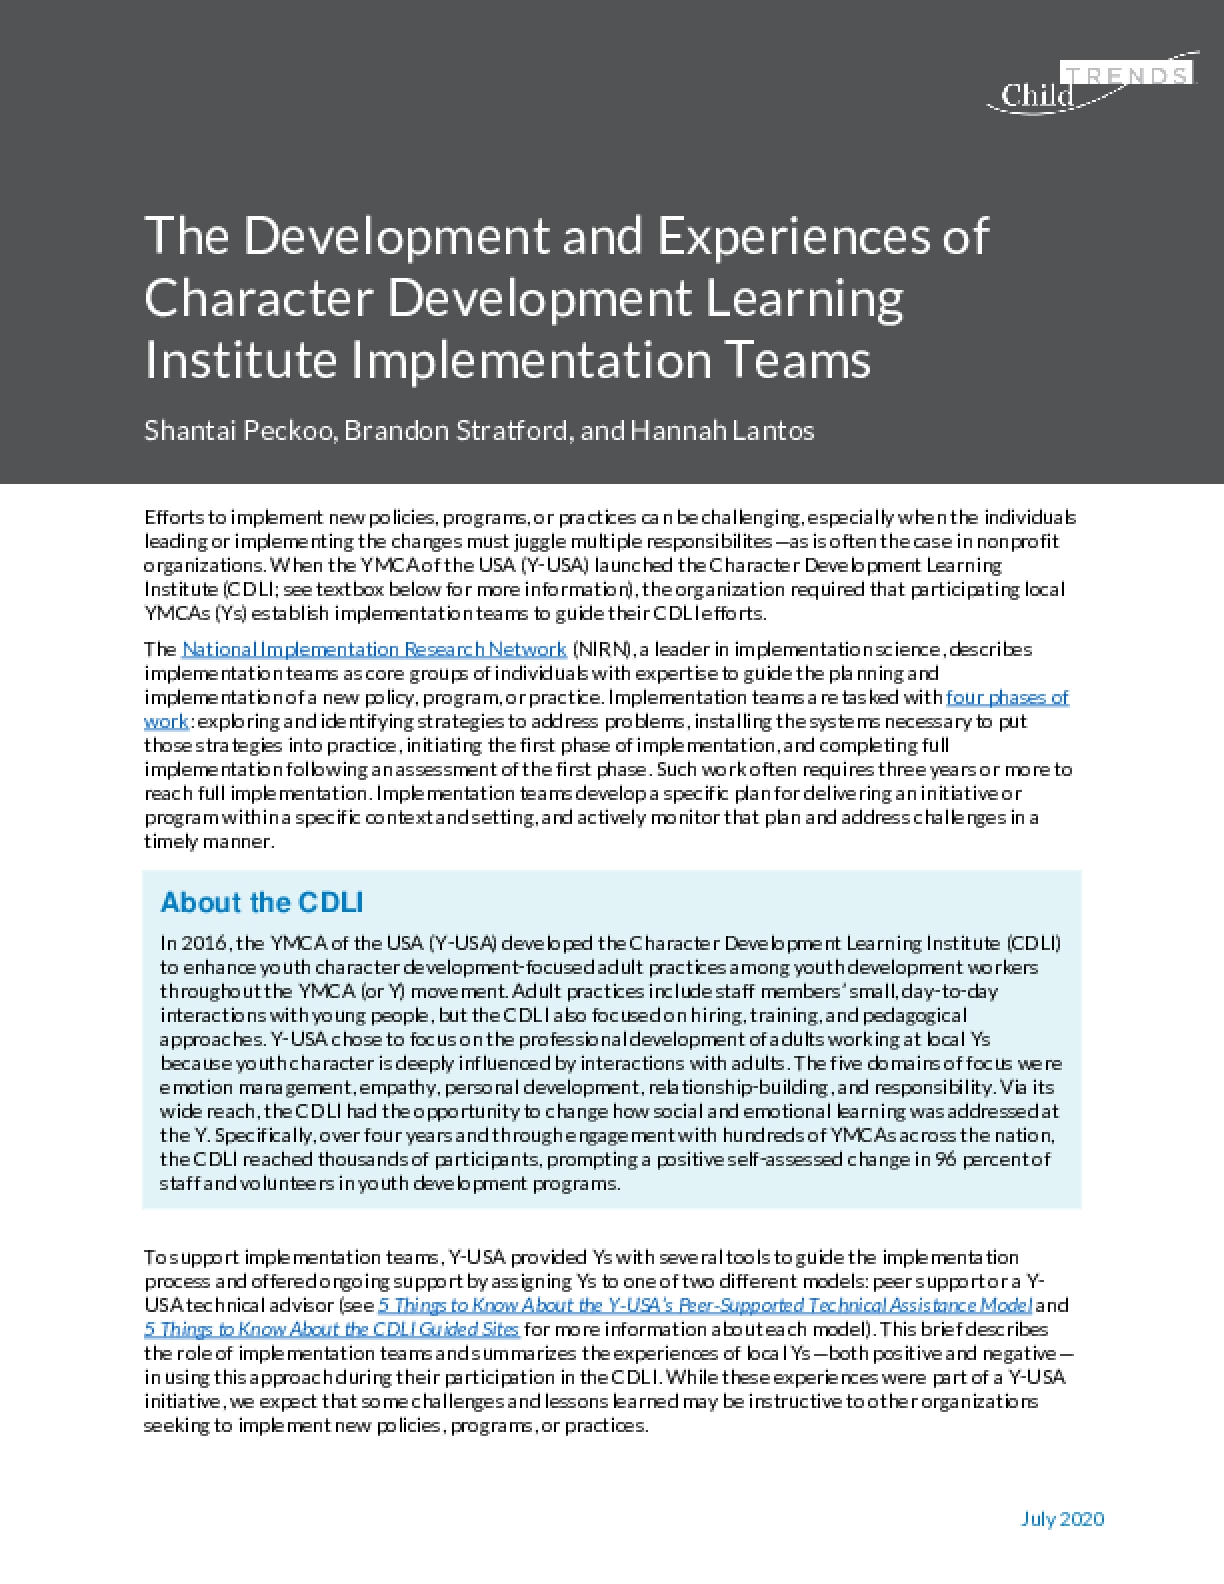 The Development and Experiences of Character Development Learning Institute Implementation Teams